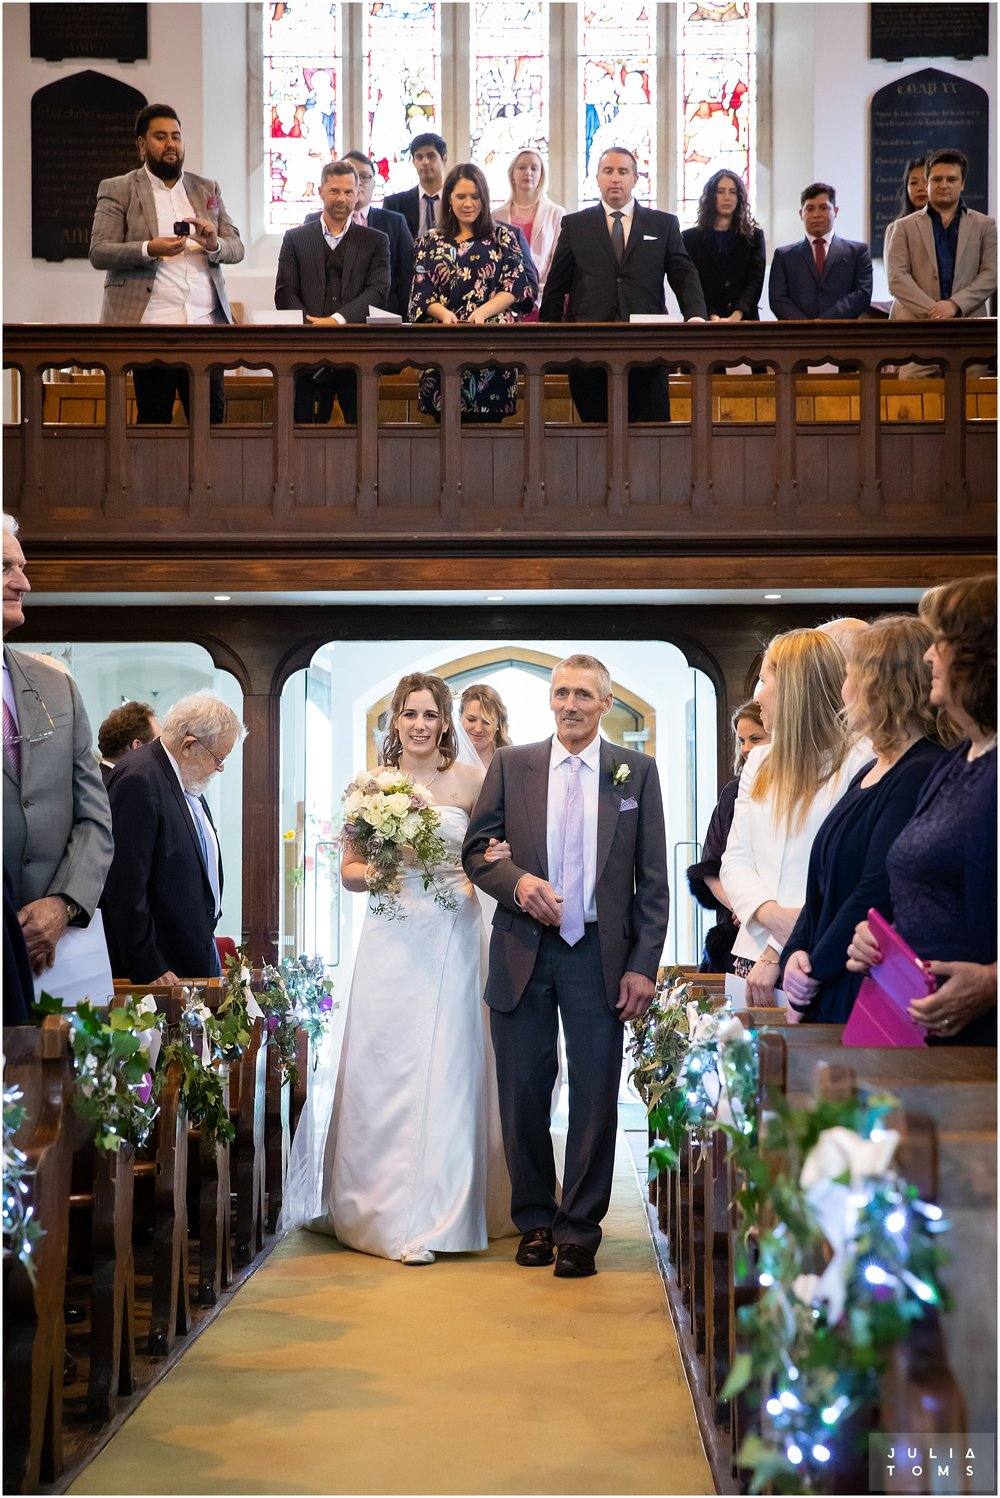 juliatoms_christian_wedding_photogtapher_midhurst_004.jpg